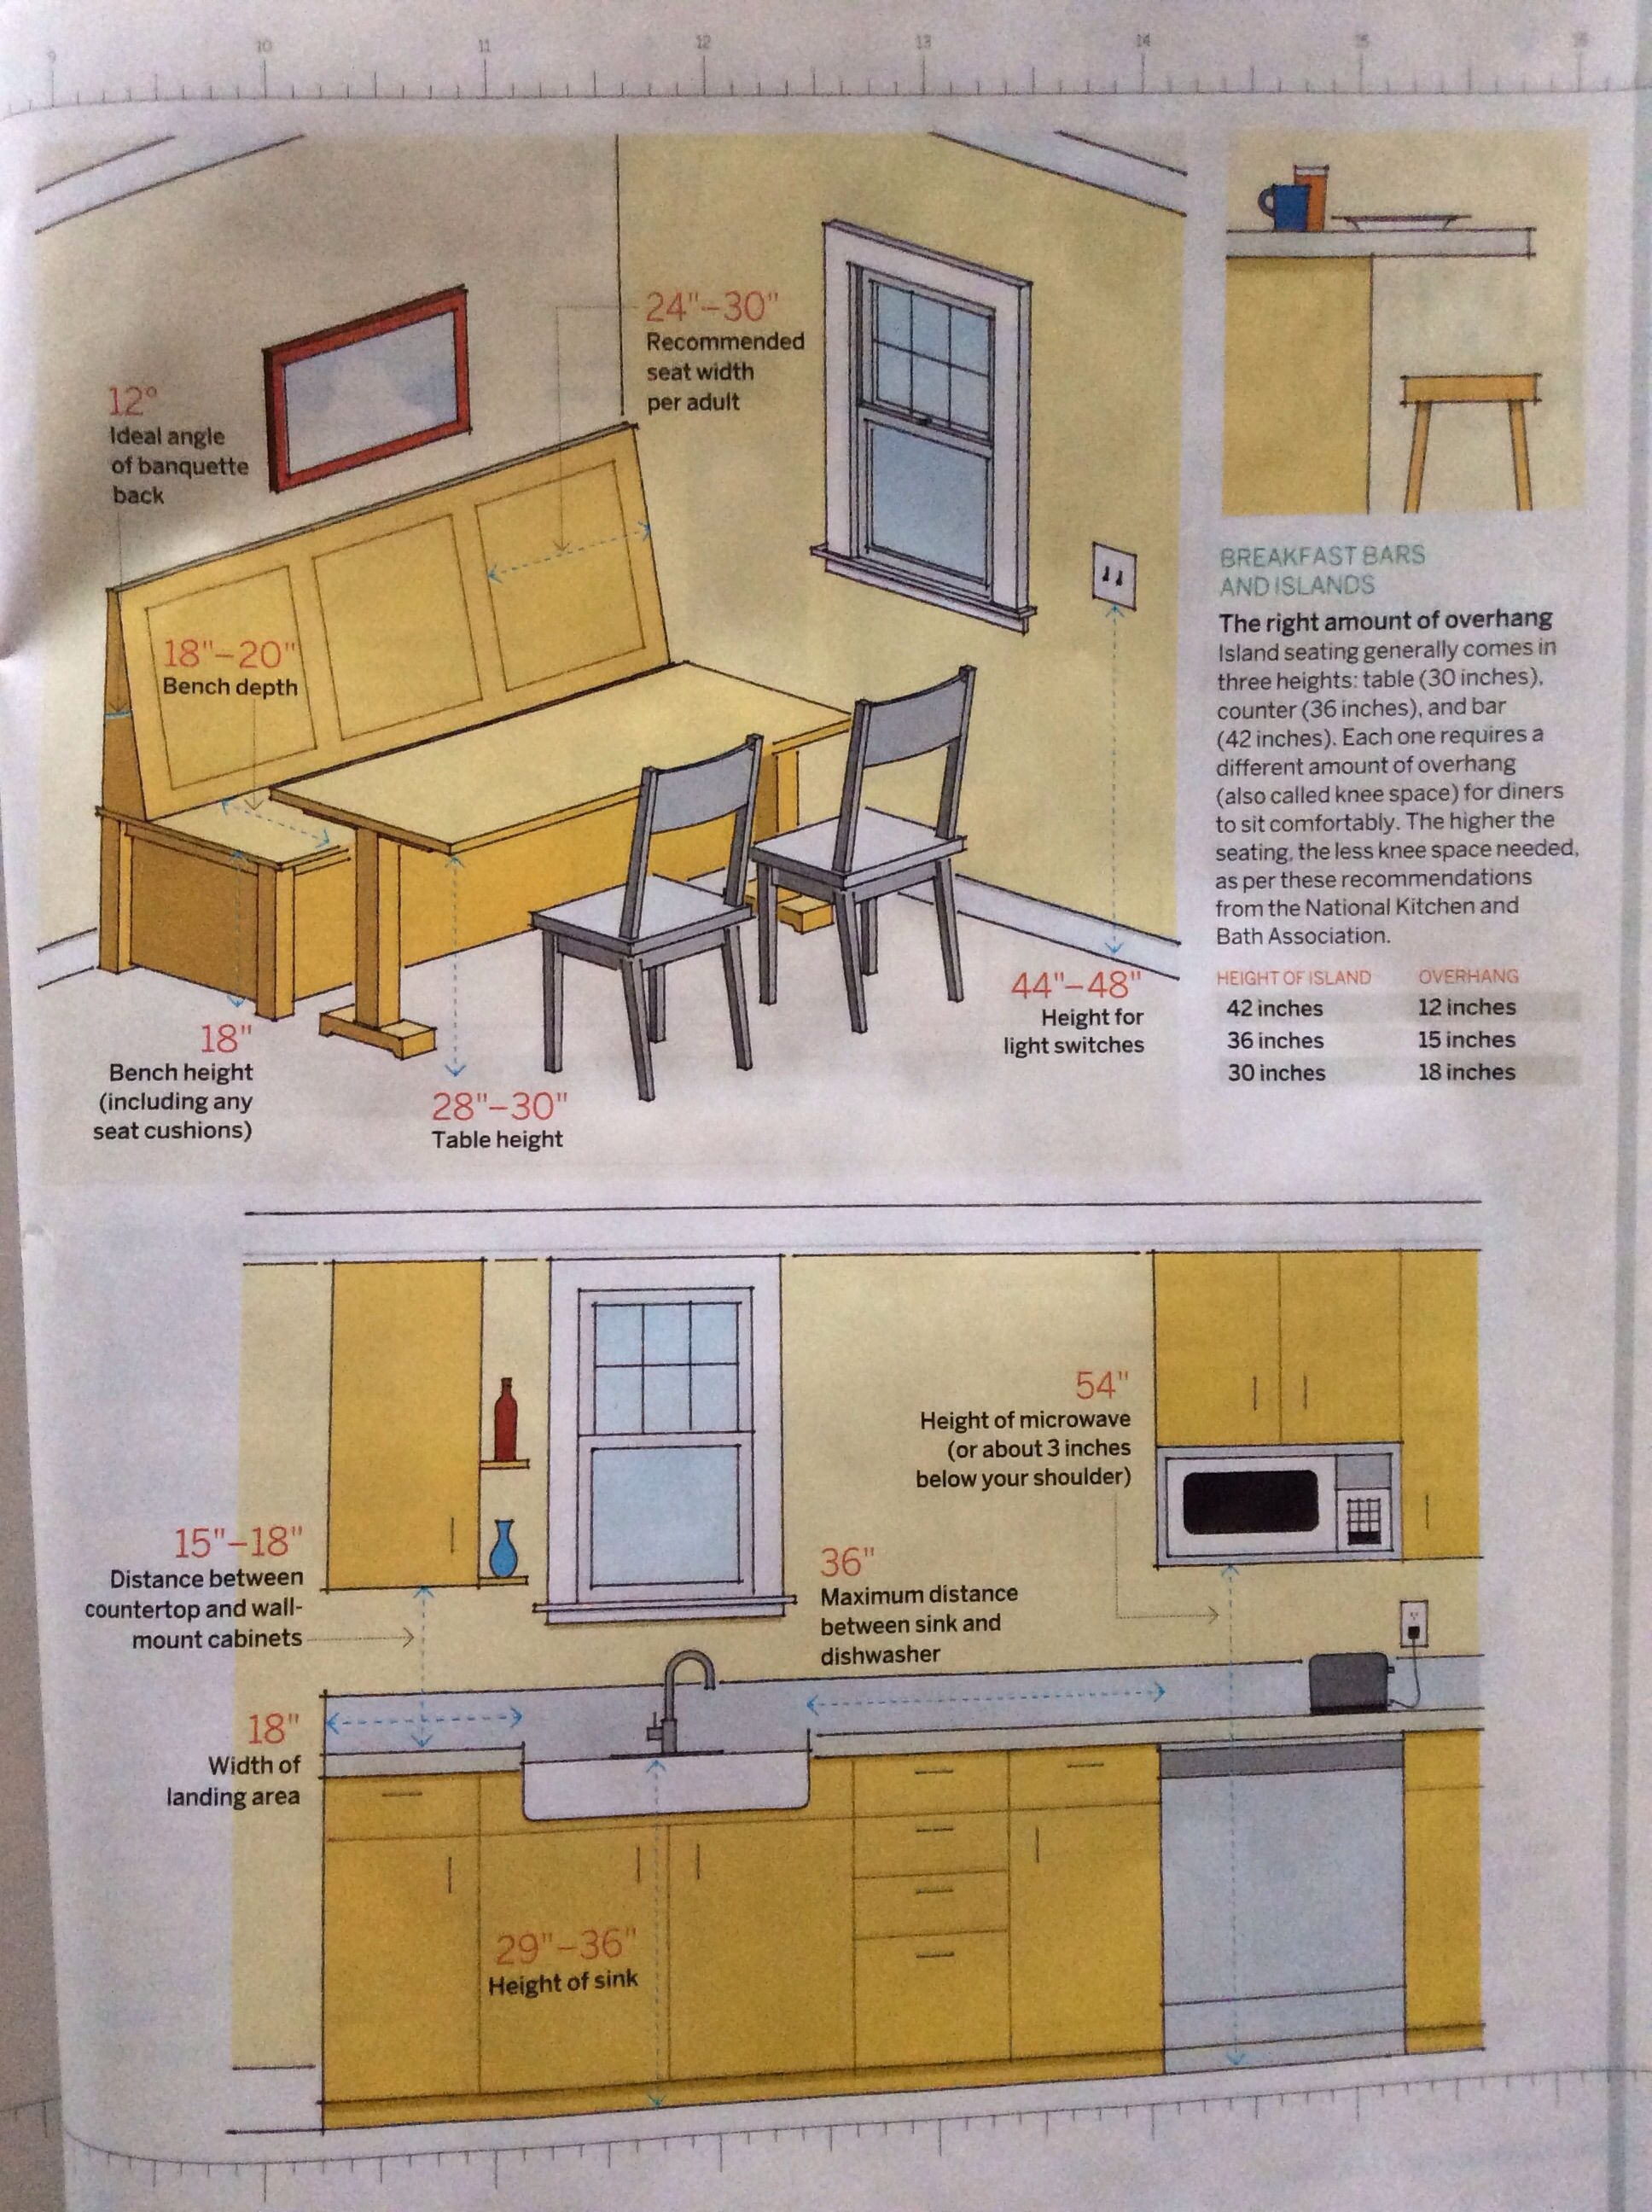 Kitchen Island Knee Space this old house article on decorating layout - kitchen (2 of 2